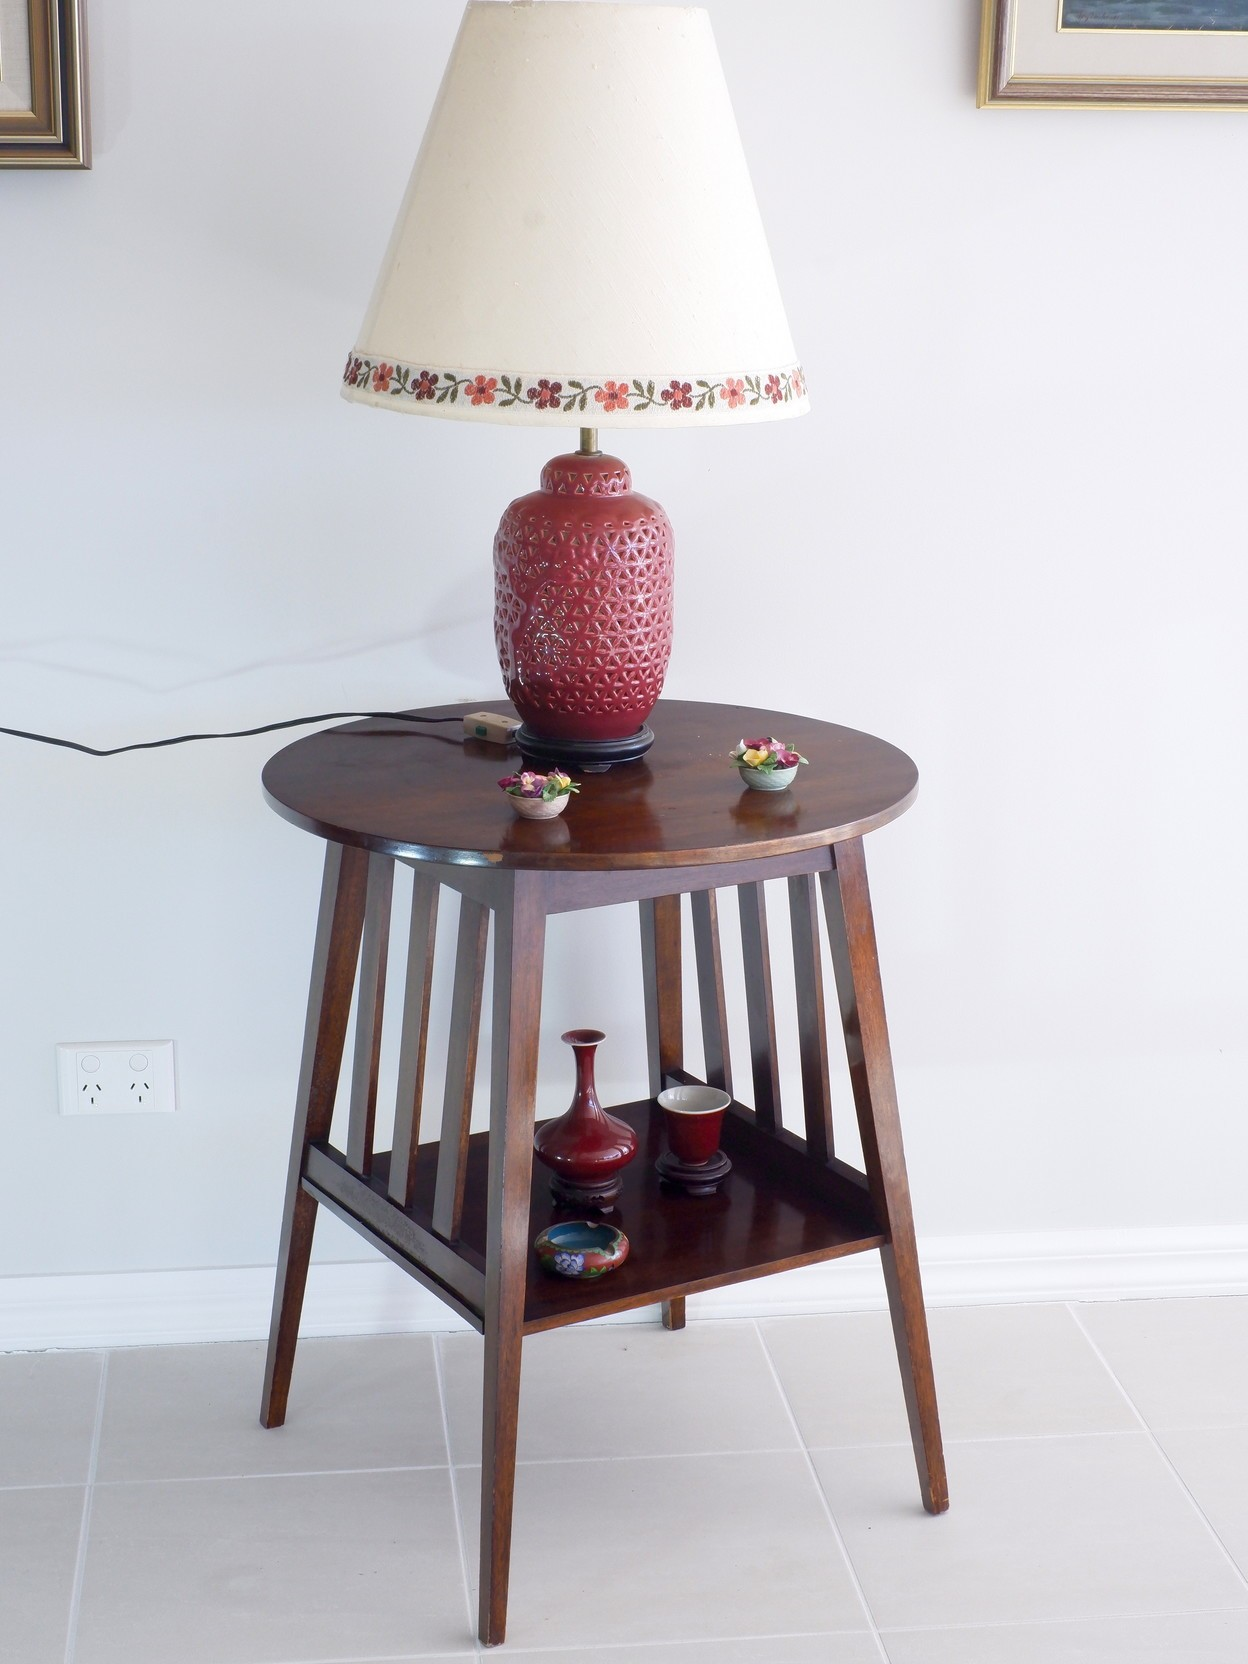 'Edwardian Maple Lamp Table Early 20th Century'